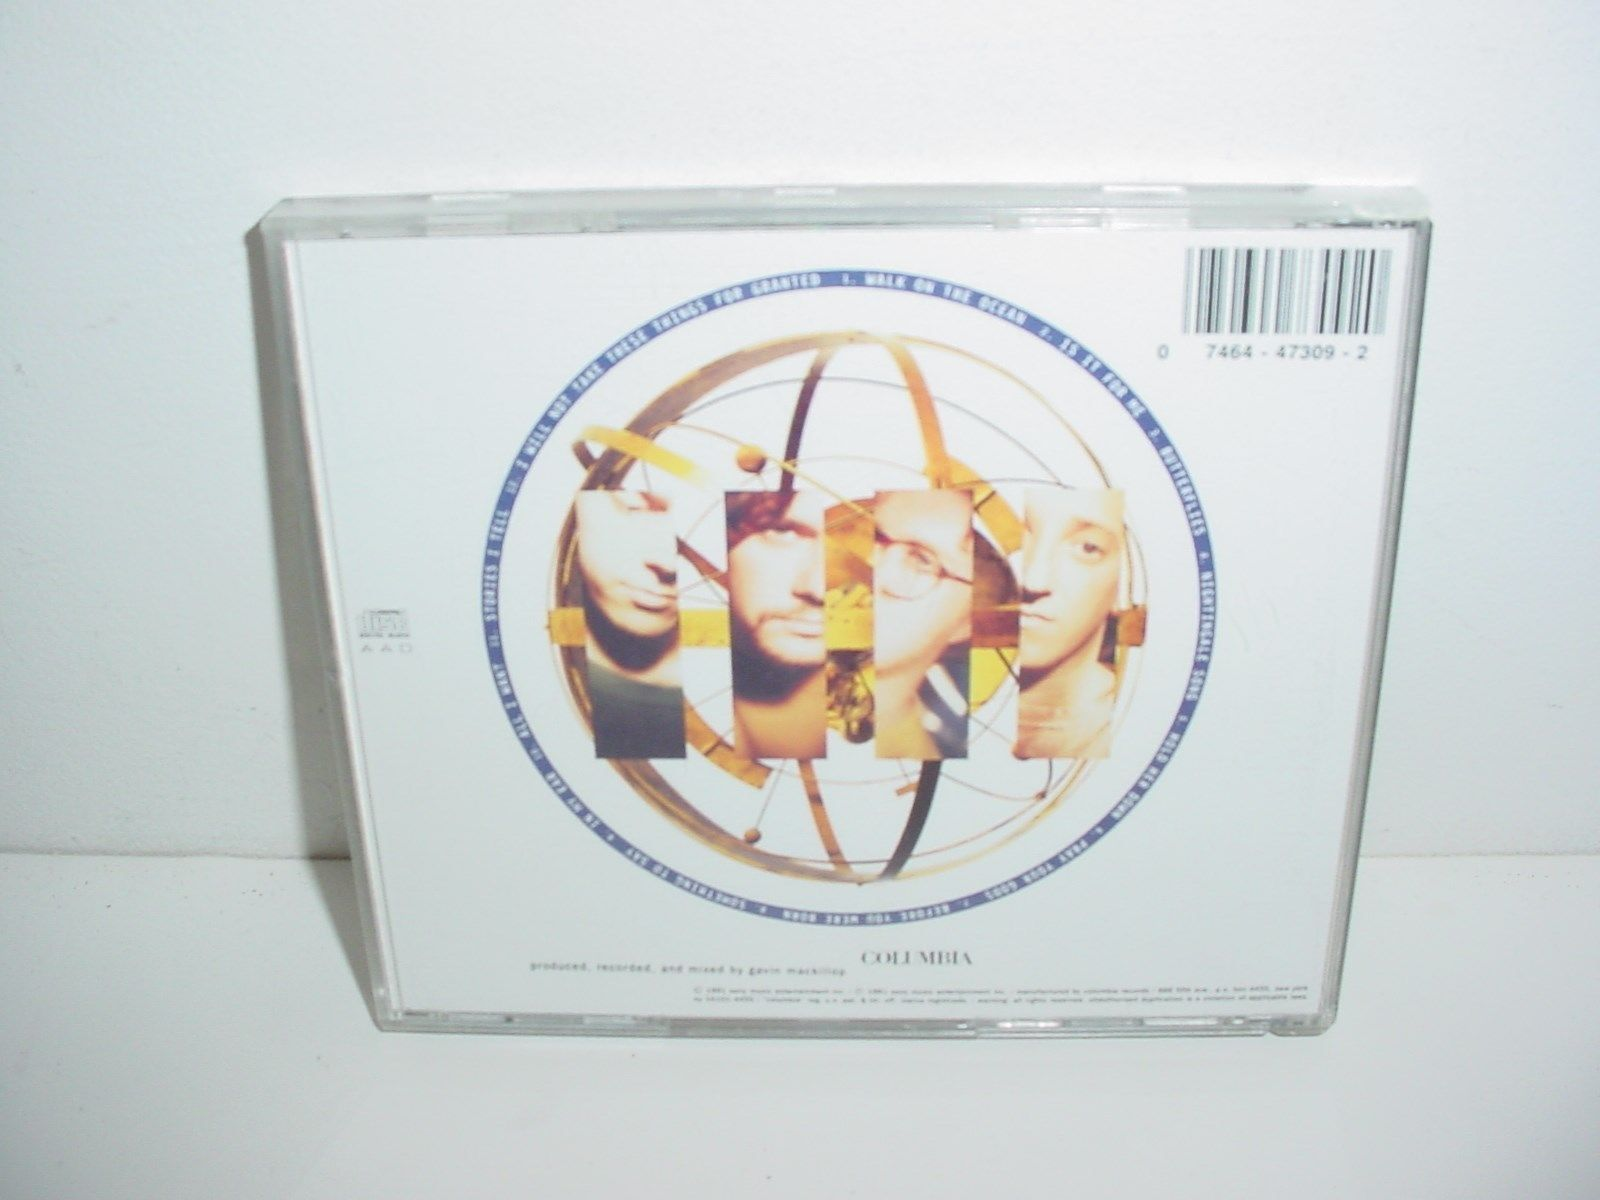 Toad The Wet Sprocket Fear CD Music